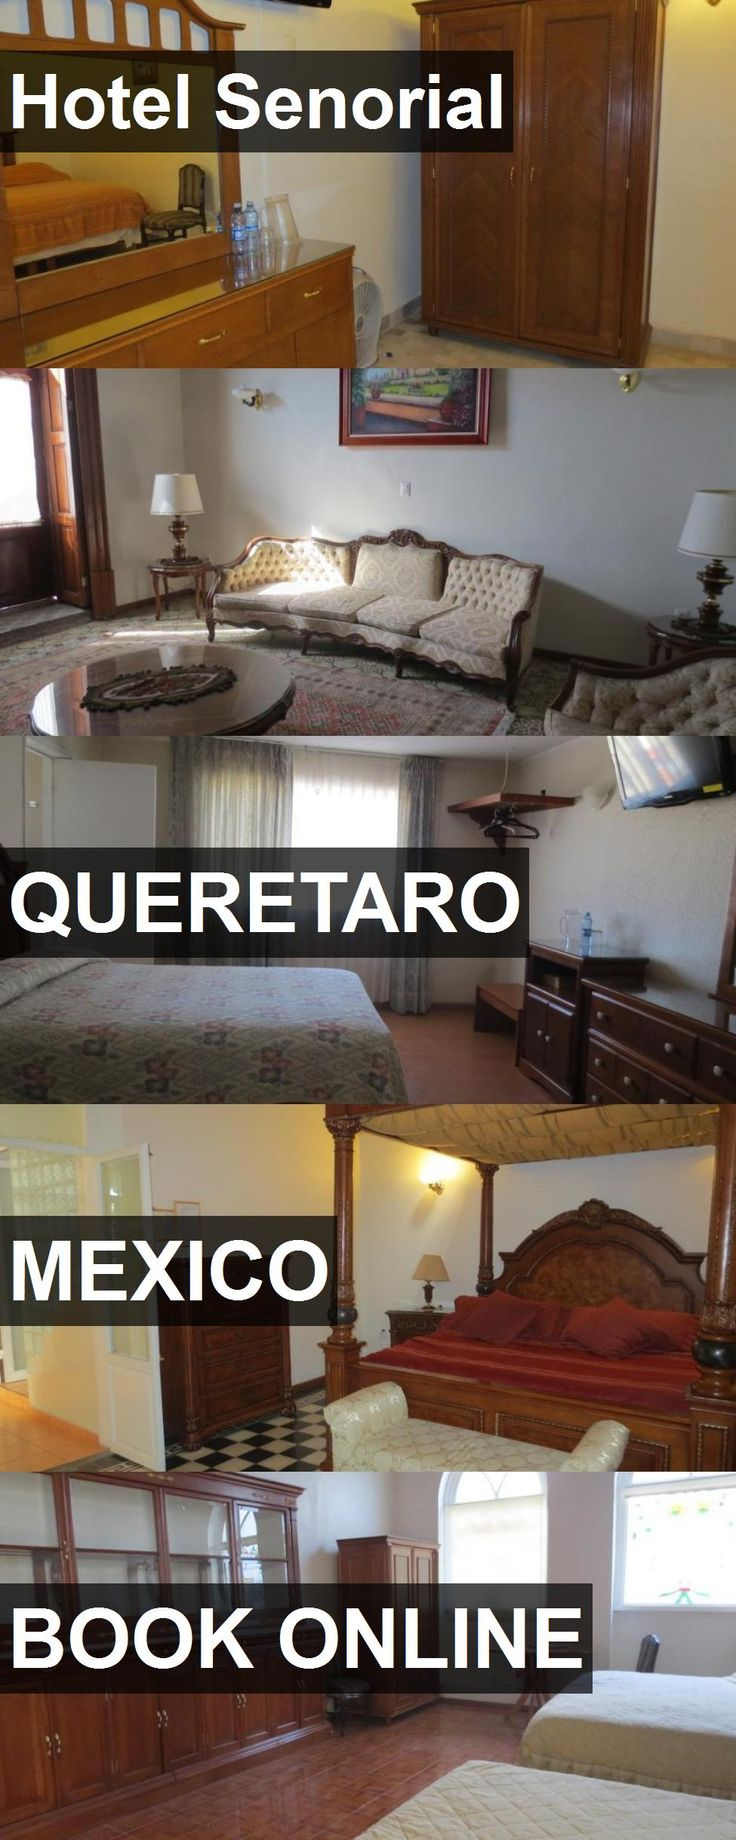 Hotel Senorial in Queretaro, Mexico. For more information, photos, reviews and best prices please follow the link. #Mexico #Queretaro #travel #vacation #hotel